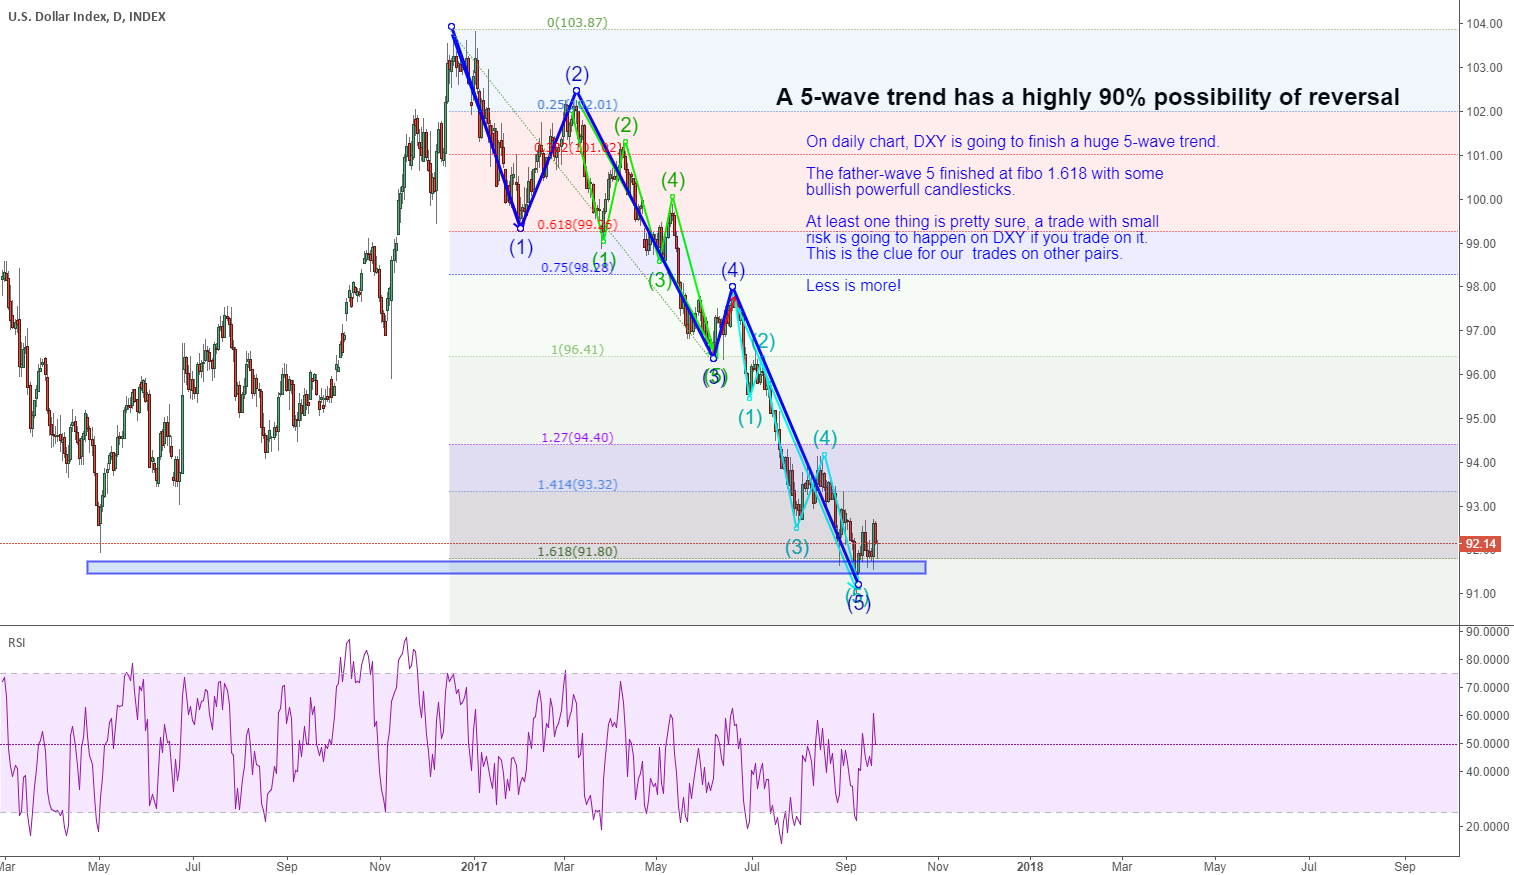 DXY: a father-five-wave trend is going to finish.